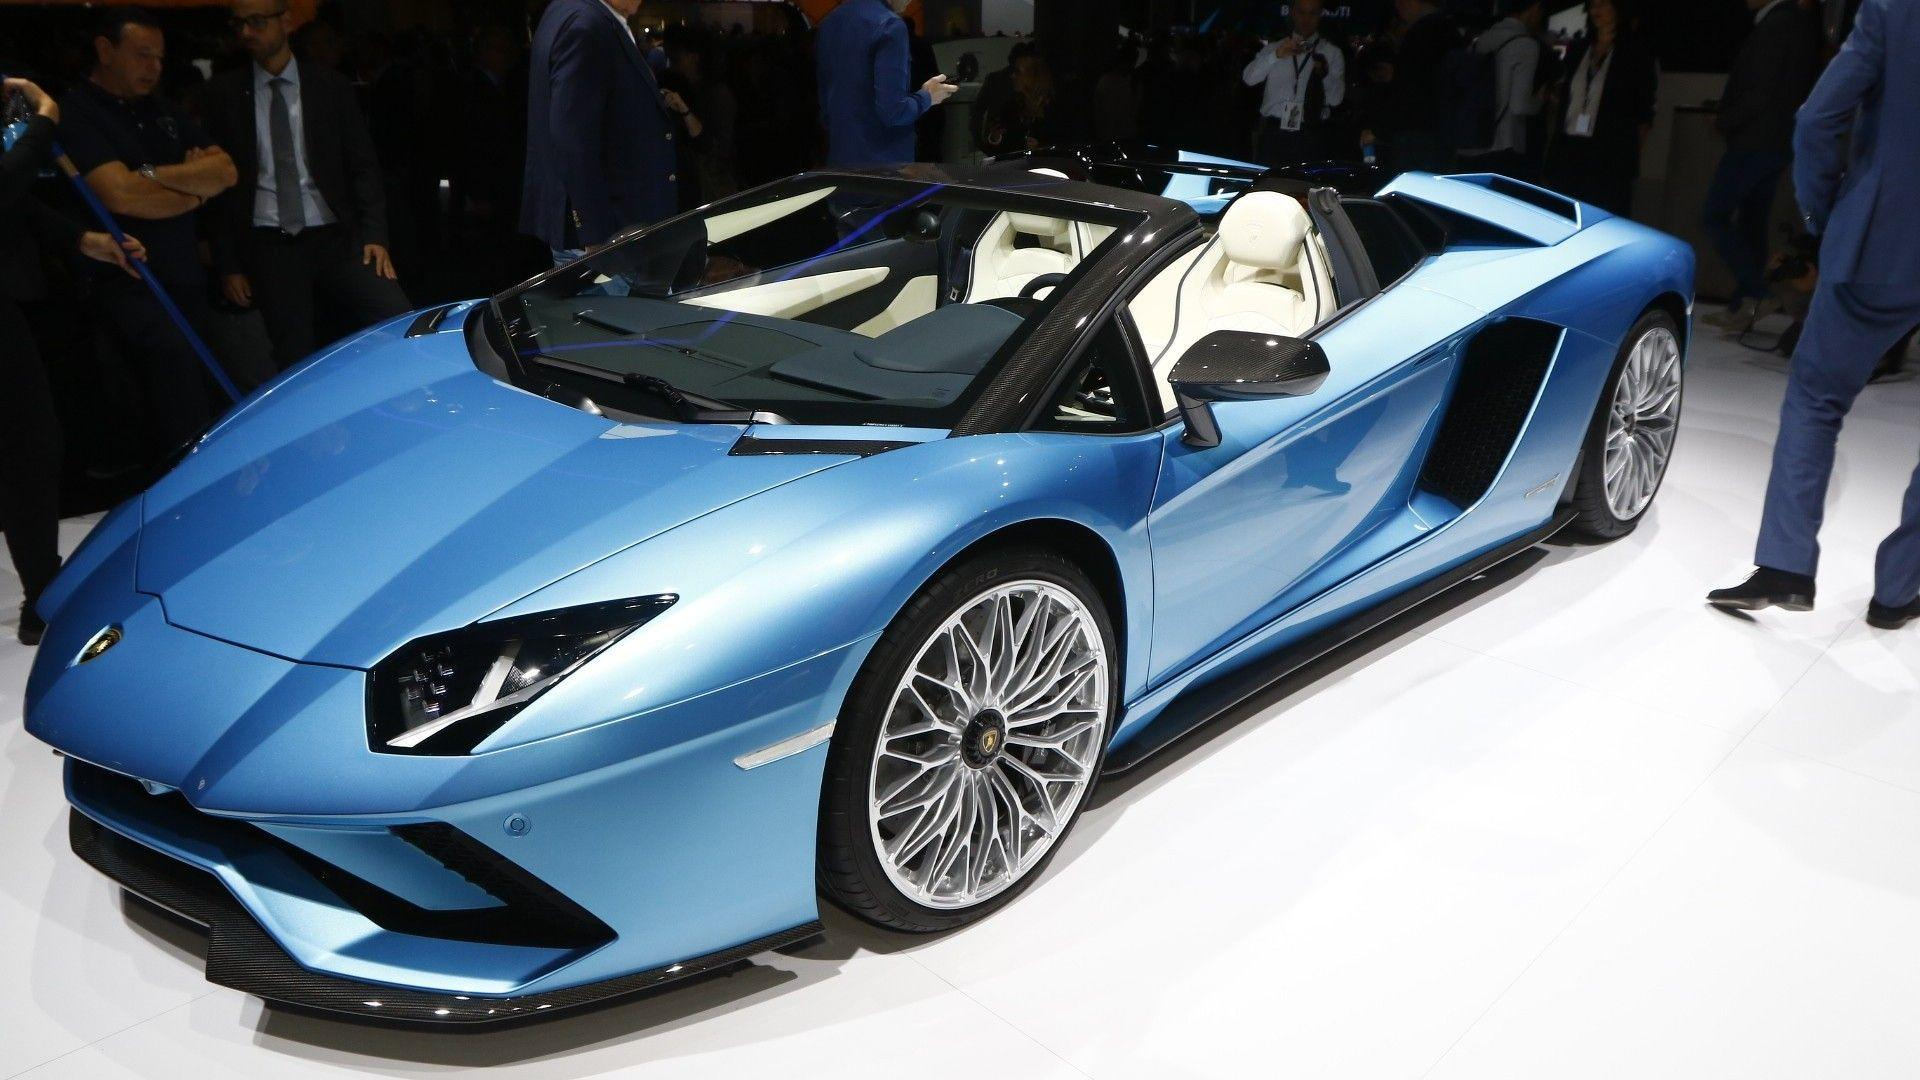 lamborghini car 2018. lamborghini car 2018 f